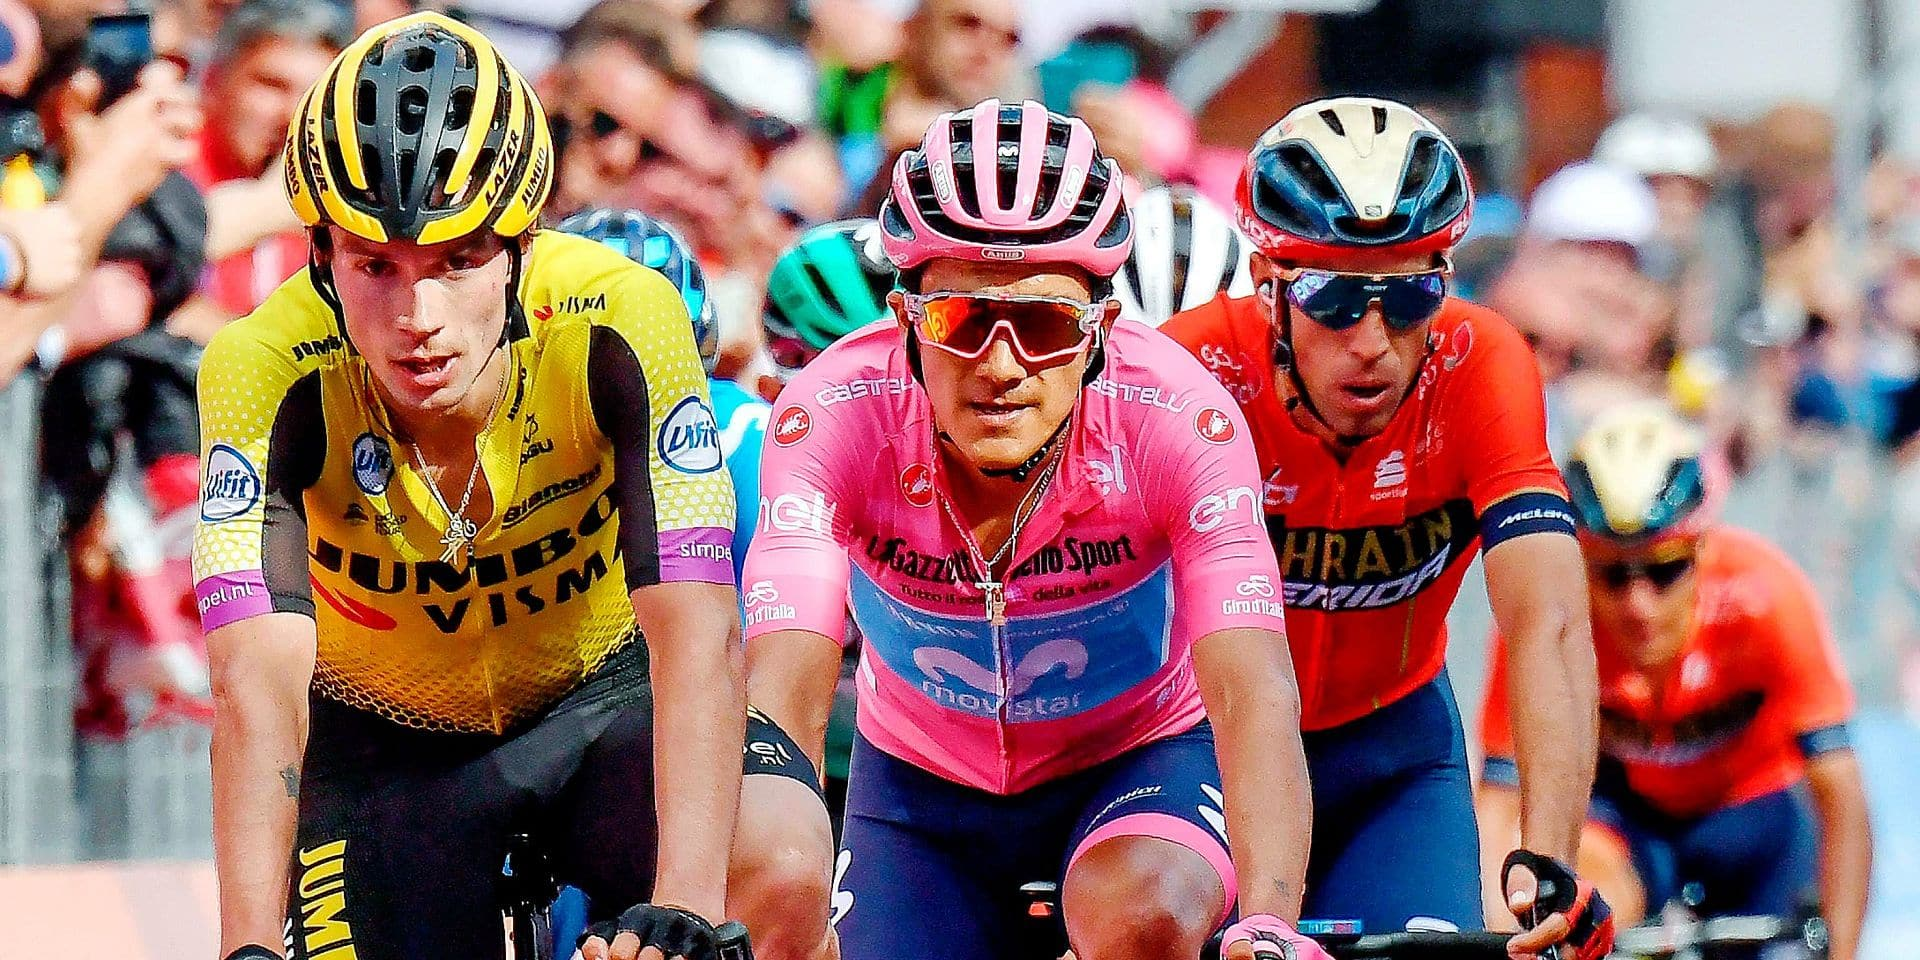 From left, Slovenia's Primoz Roglic, Ecuador's Richard Antonio Carapaz Montenegro, and Italy's Vincenzo Nibali, cross the finish line at the end of the 19th stage of the Giro d'Italia cycling race, from Treviso to San Marino di Castrozza, Italy, Friday, May 31, 2019. (Alessandro Di Meo/ANSA via AP)